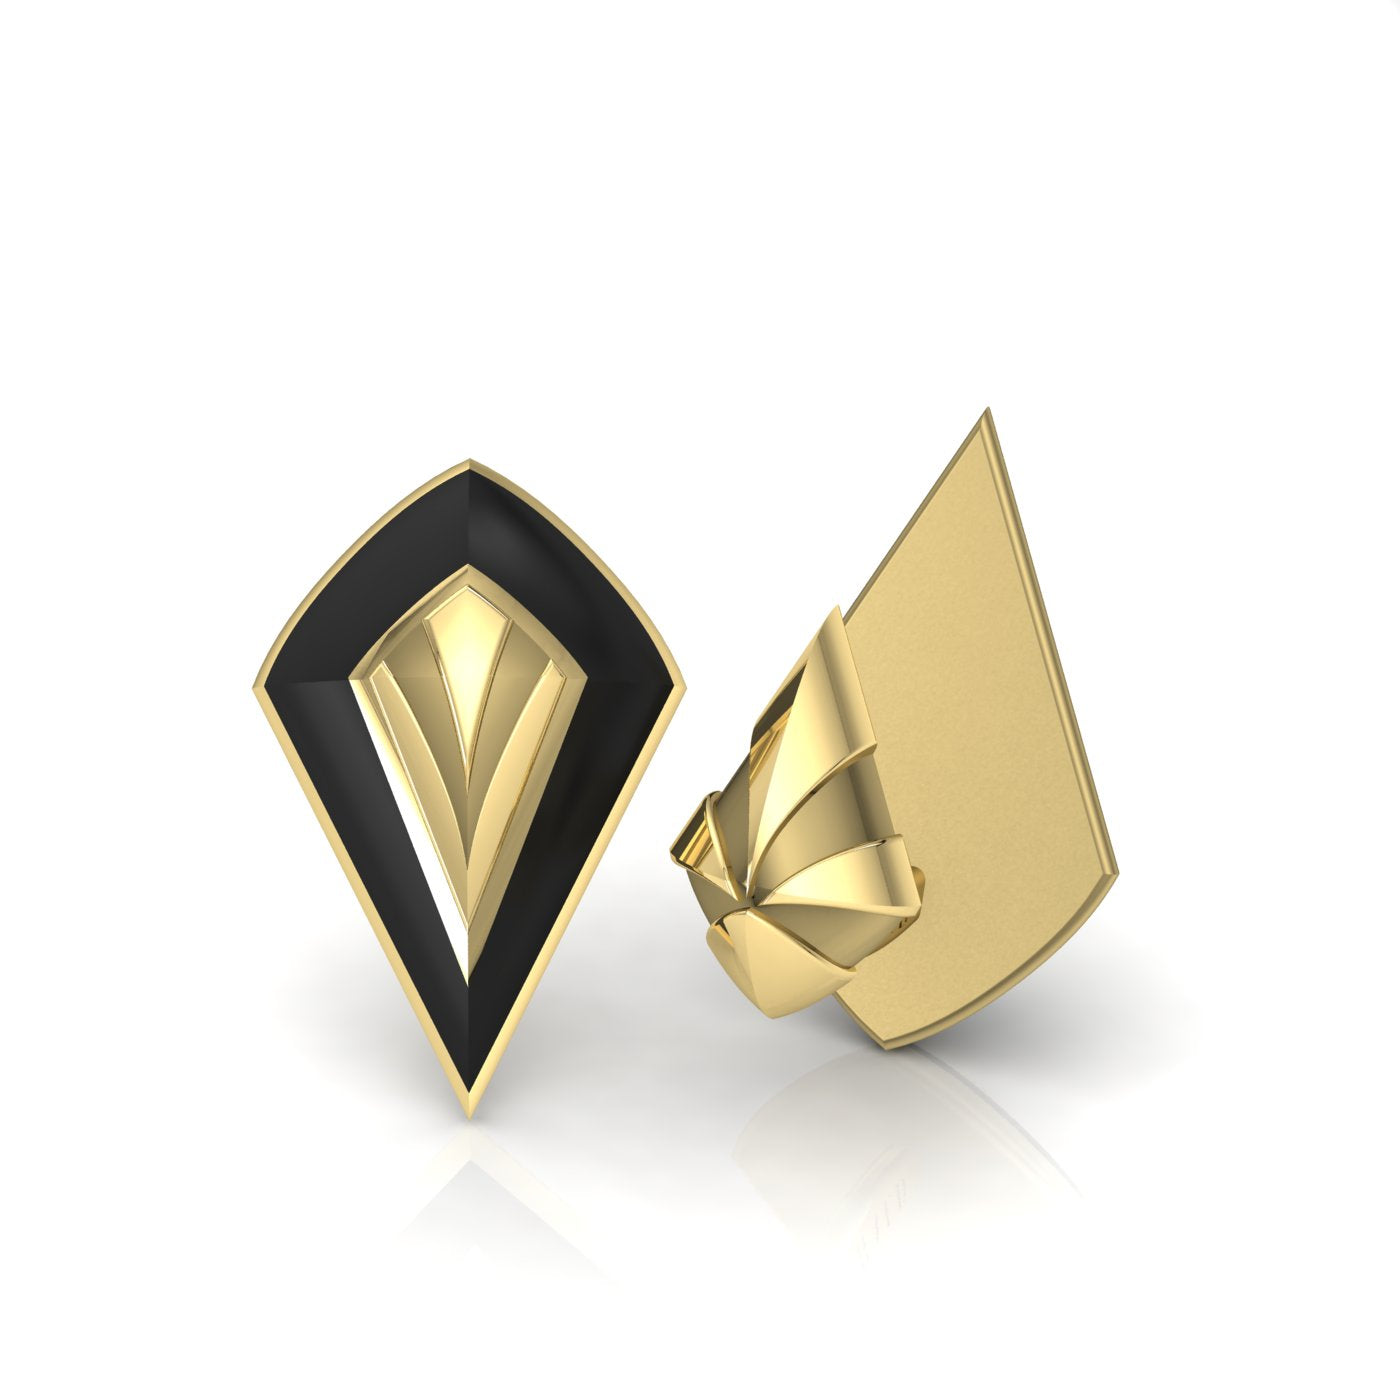 Gold and Enamel Cufflink from Herald Diamond Couture